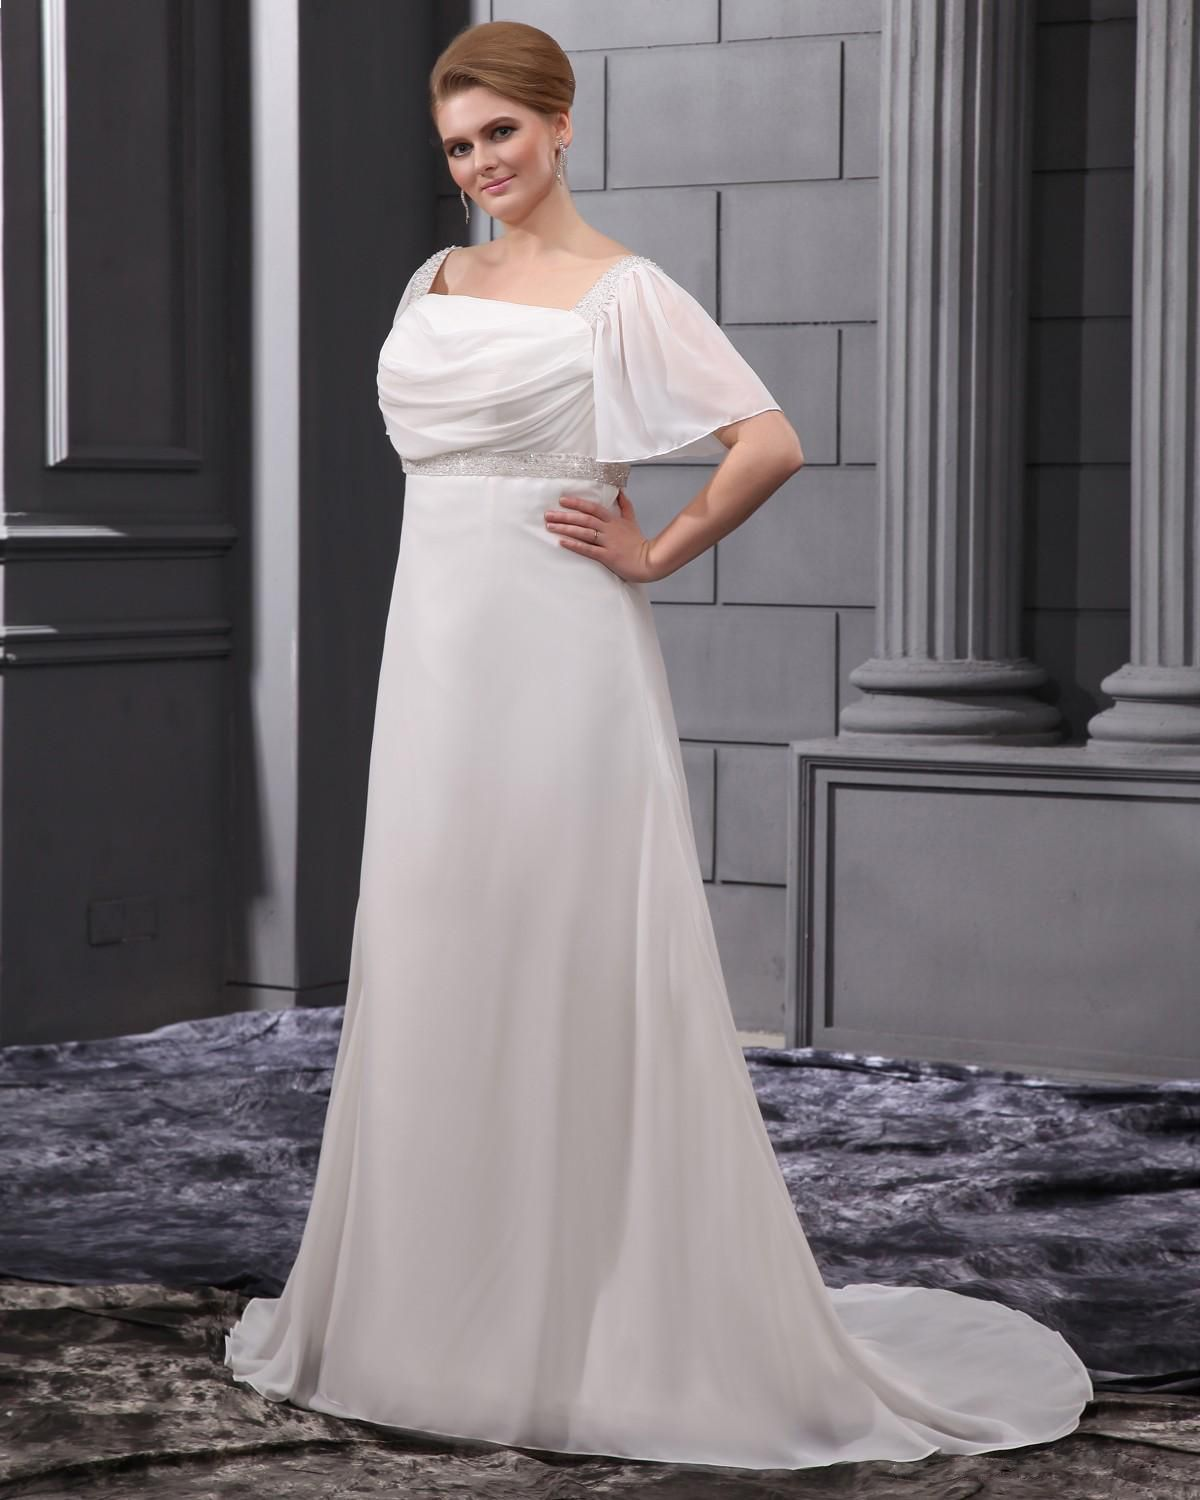 Maternity casual wedding dress  Beading Sash Court Plus Size Bridal Gown Wedding Dress  Wedding